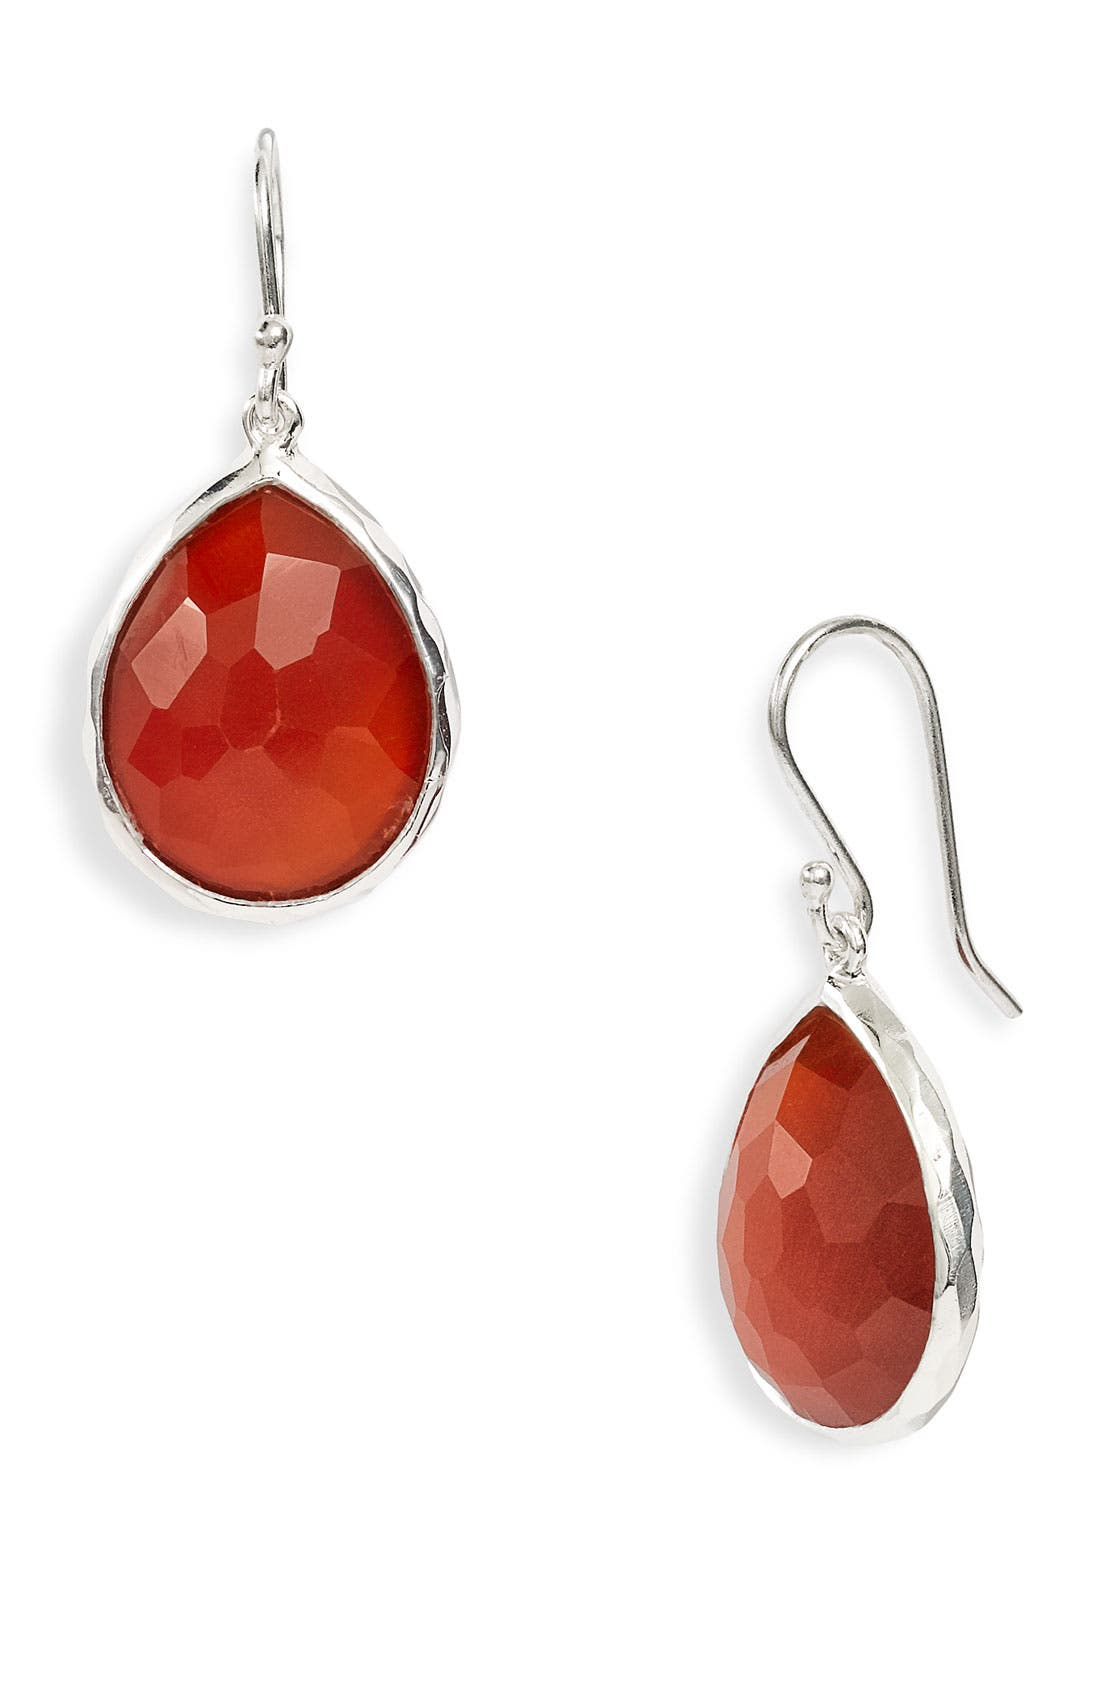 Main Image - Ippolita 'Grotto' Small Teardrop Earrings